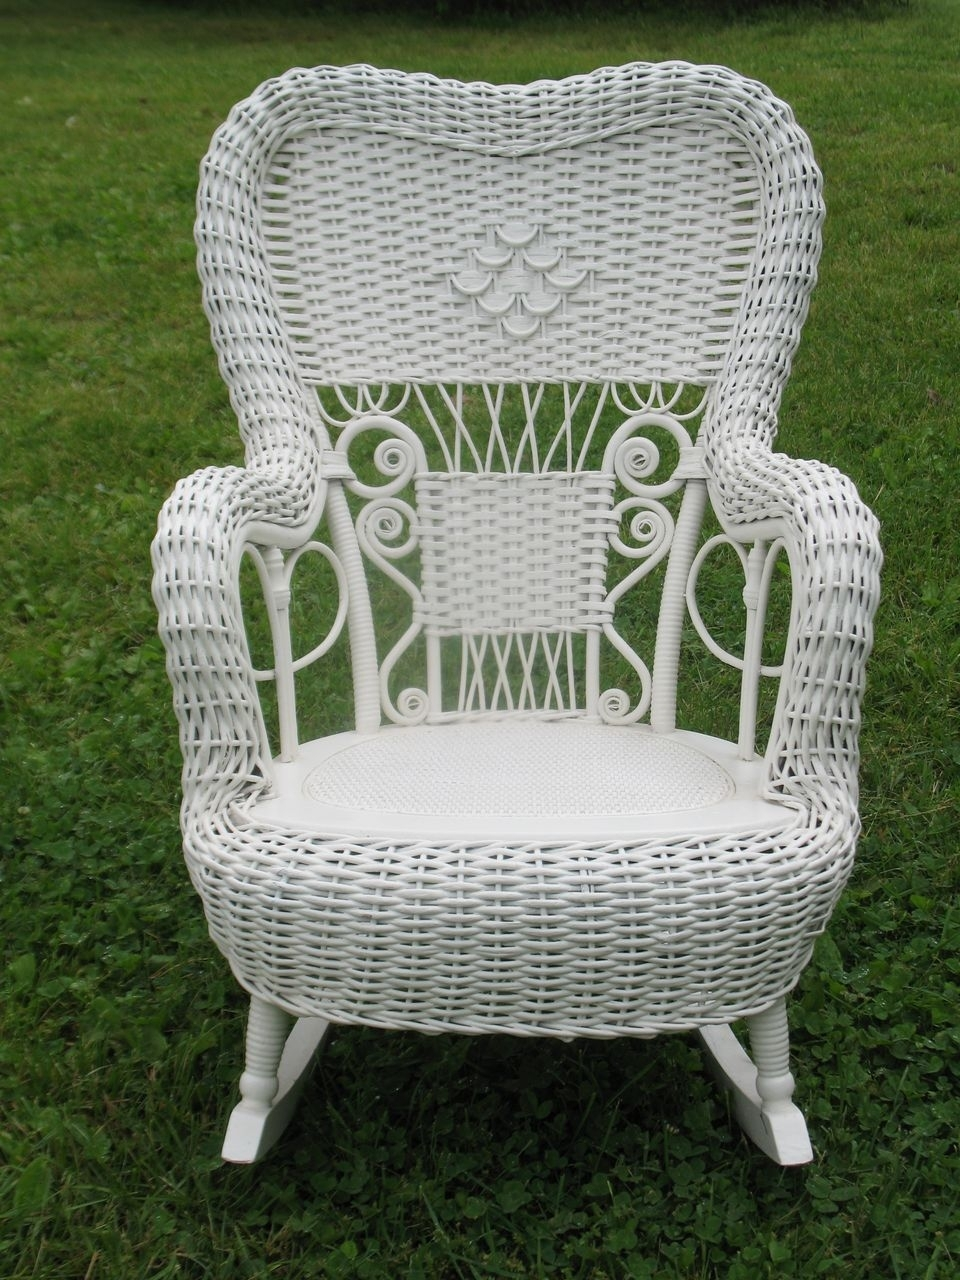 Chair | Wicker Porch Rockers Outdoor Furniture Wooden Garden Rocking Intended For White Wicker Rocking Chairs (#4 of 15)